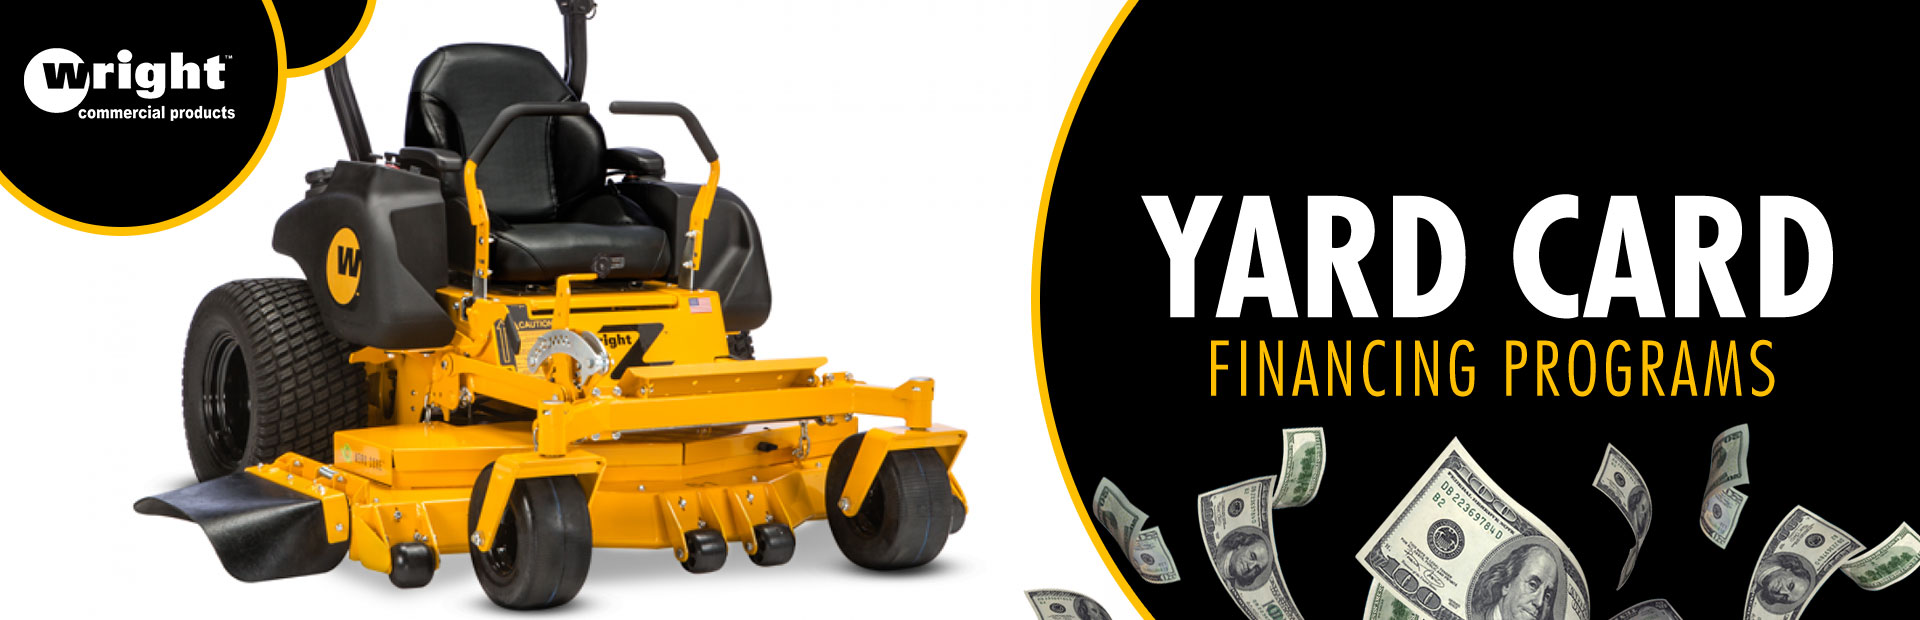 Wright: Wright - Yard Card Financing Programs